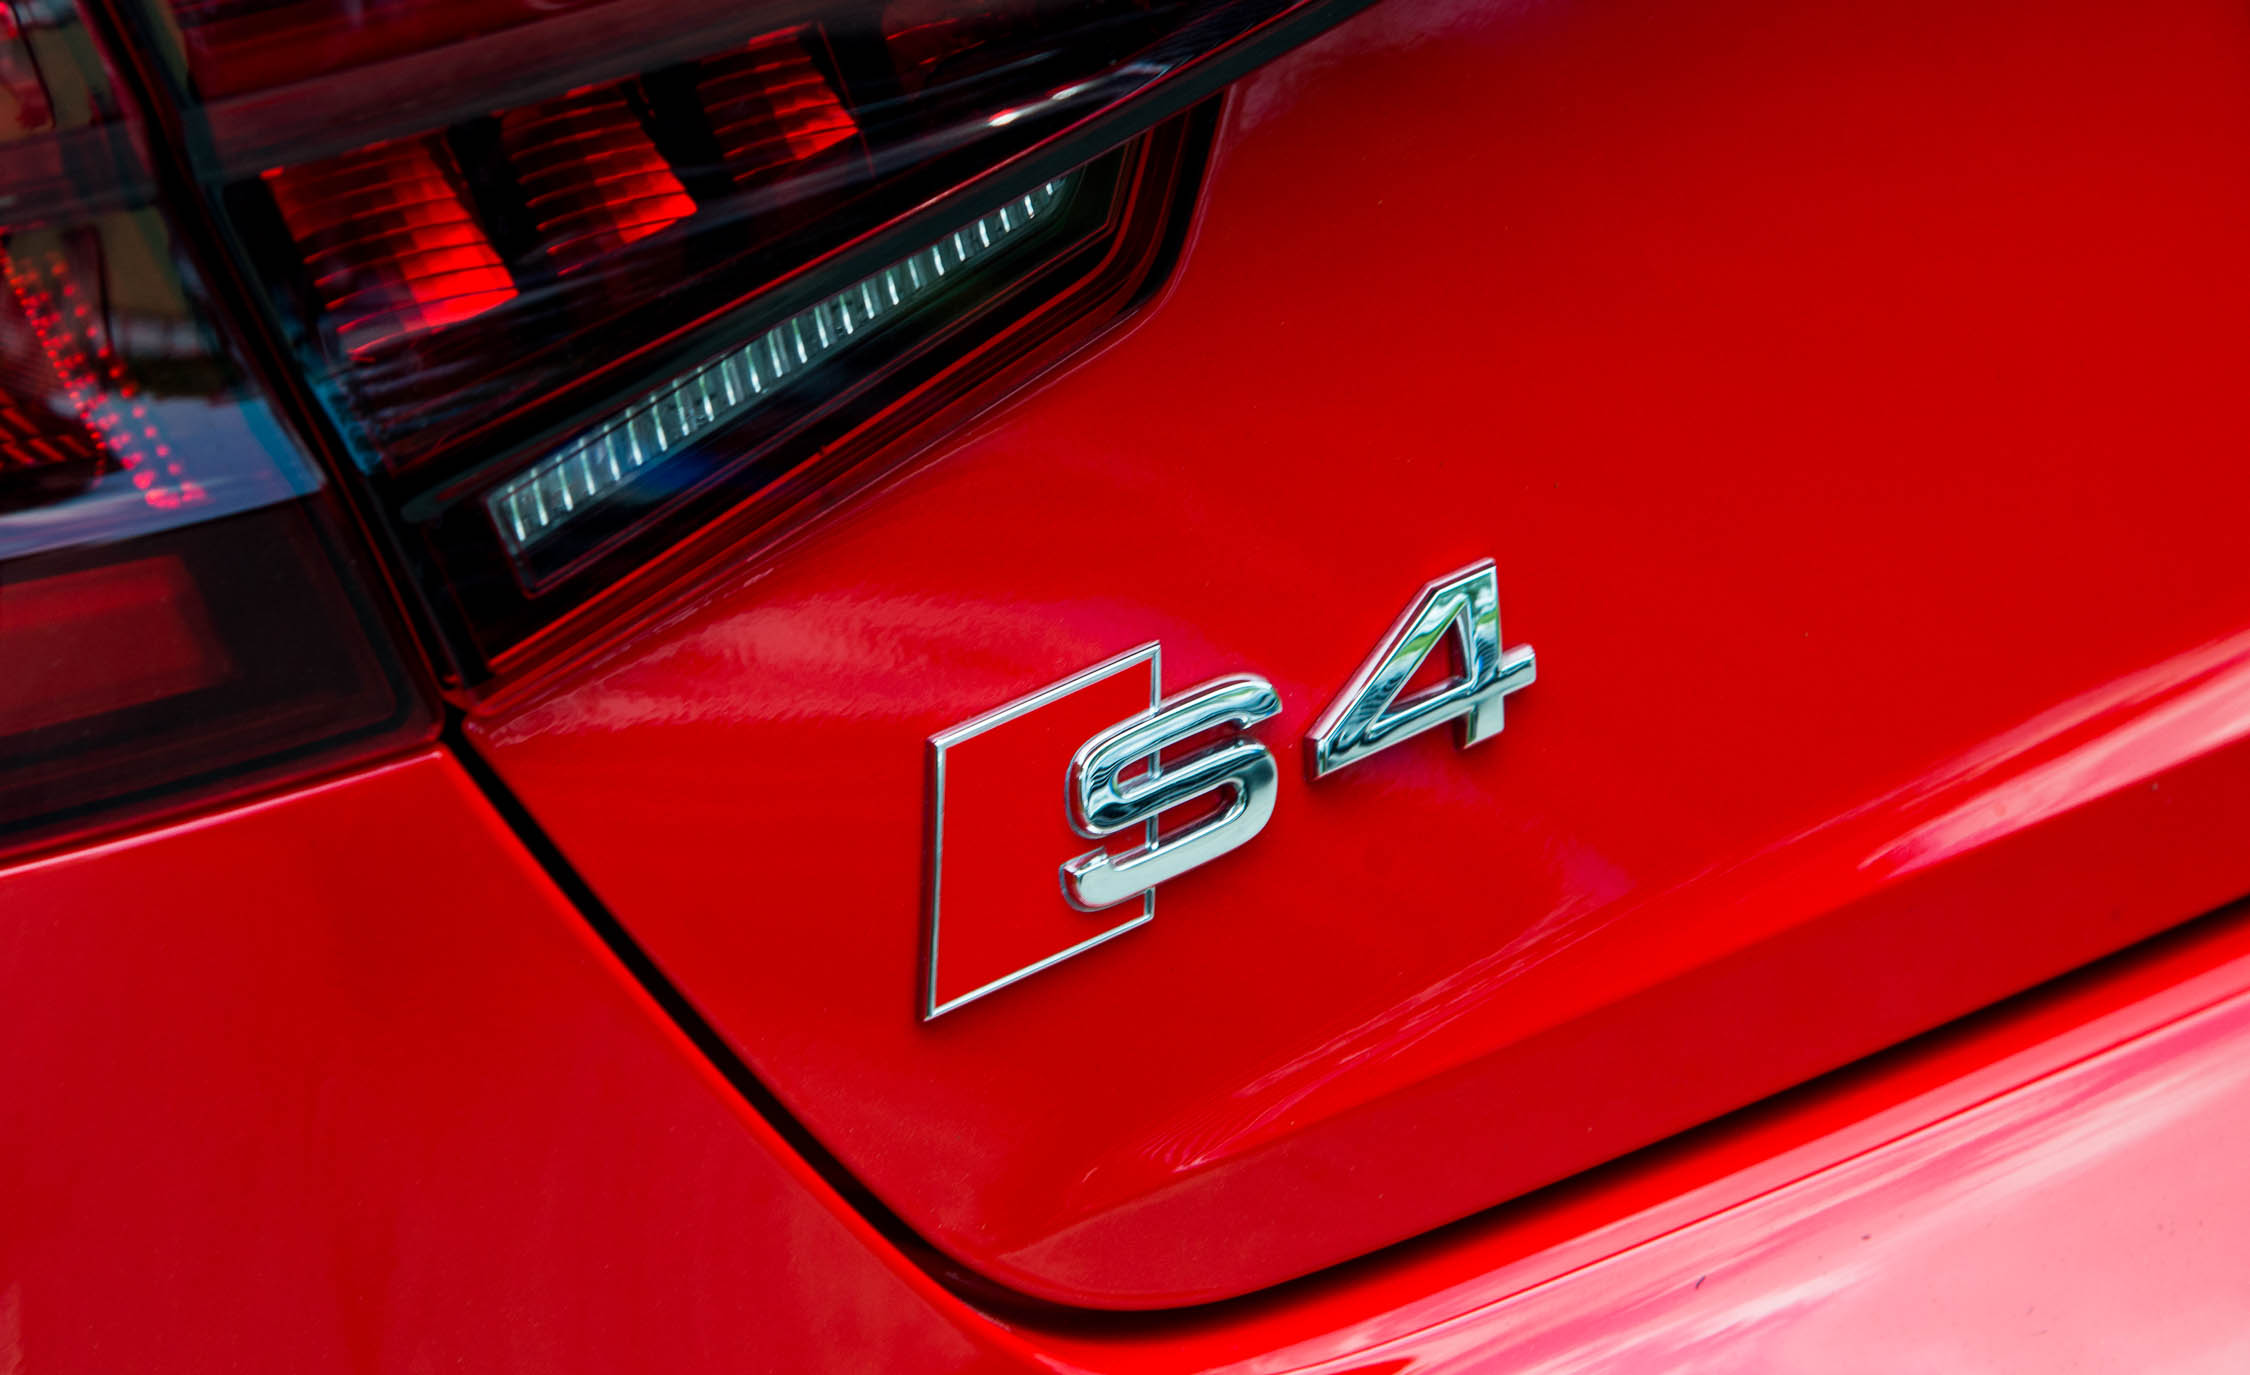 2018 Audi S4 Exterior Red View Rear Emblem (Photo 5 of 17)